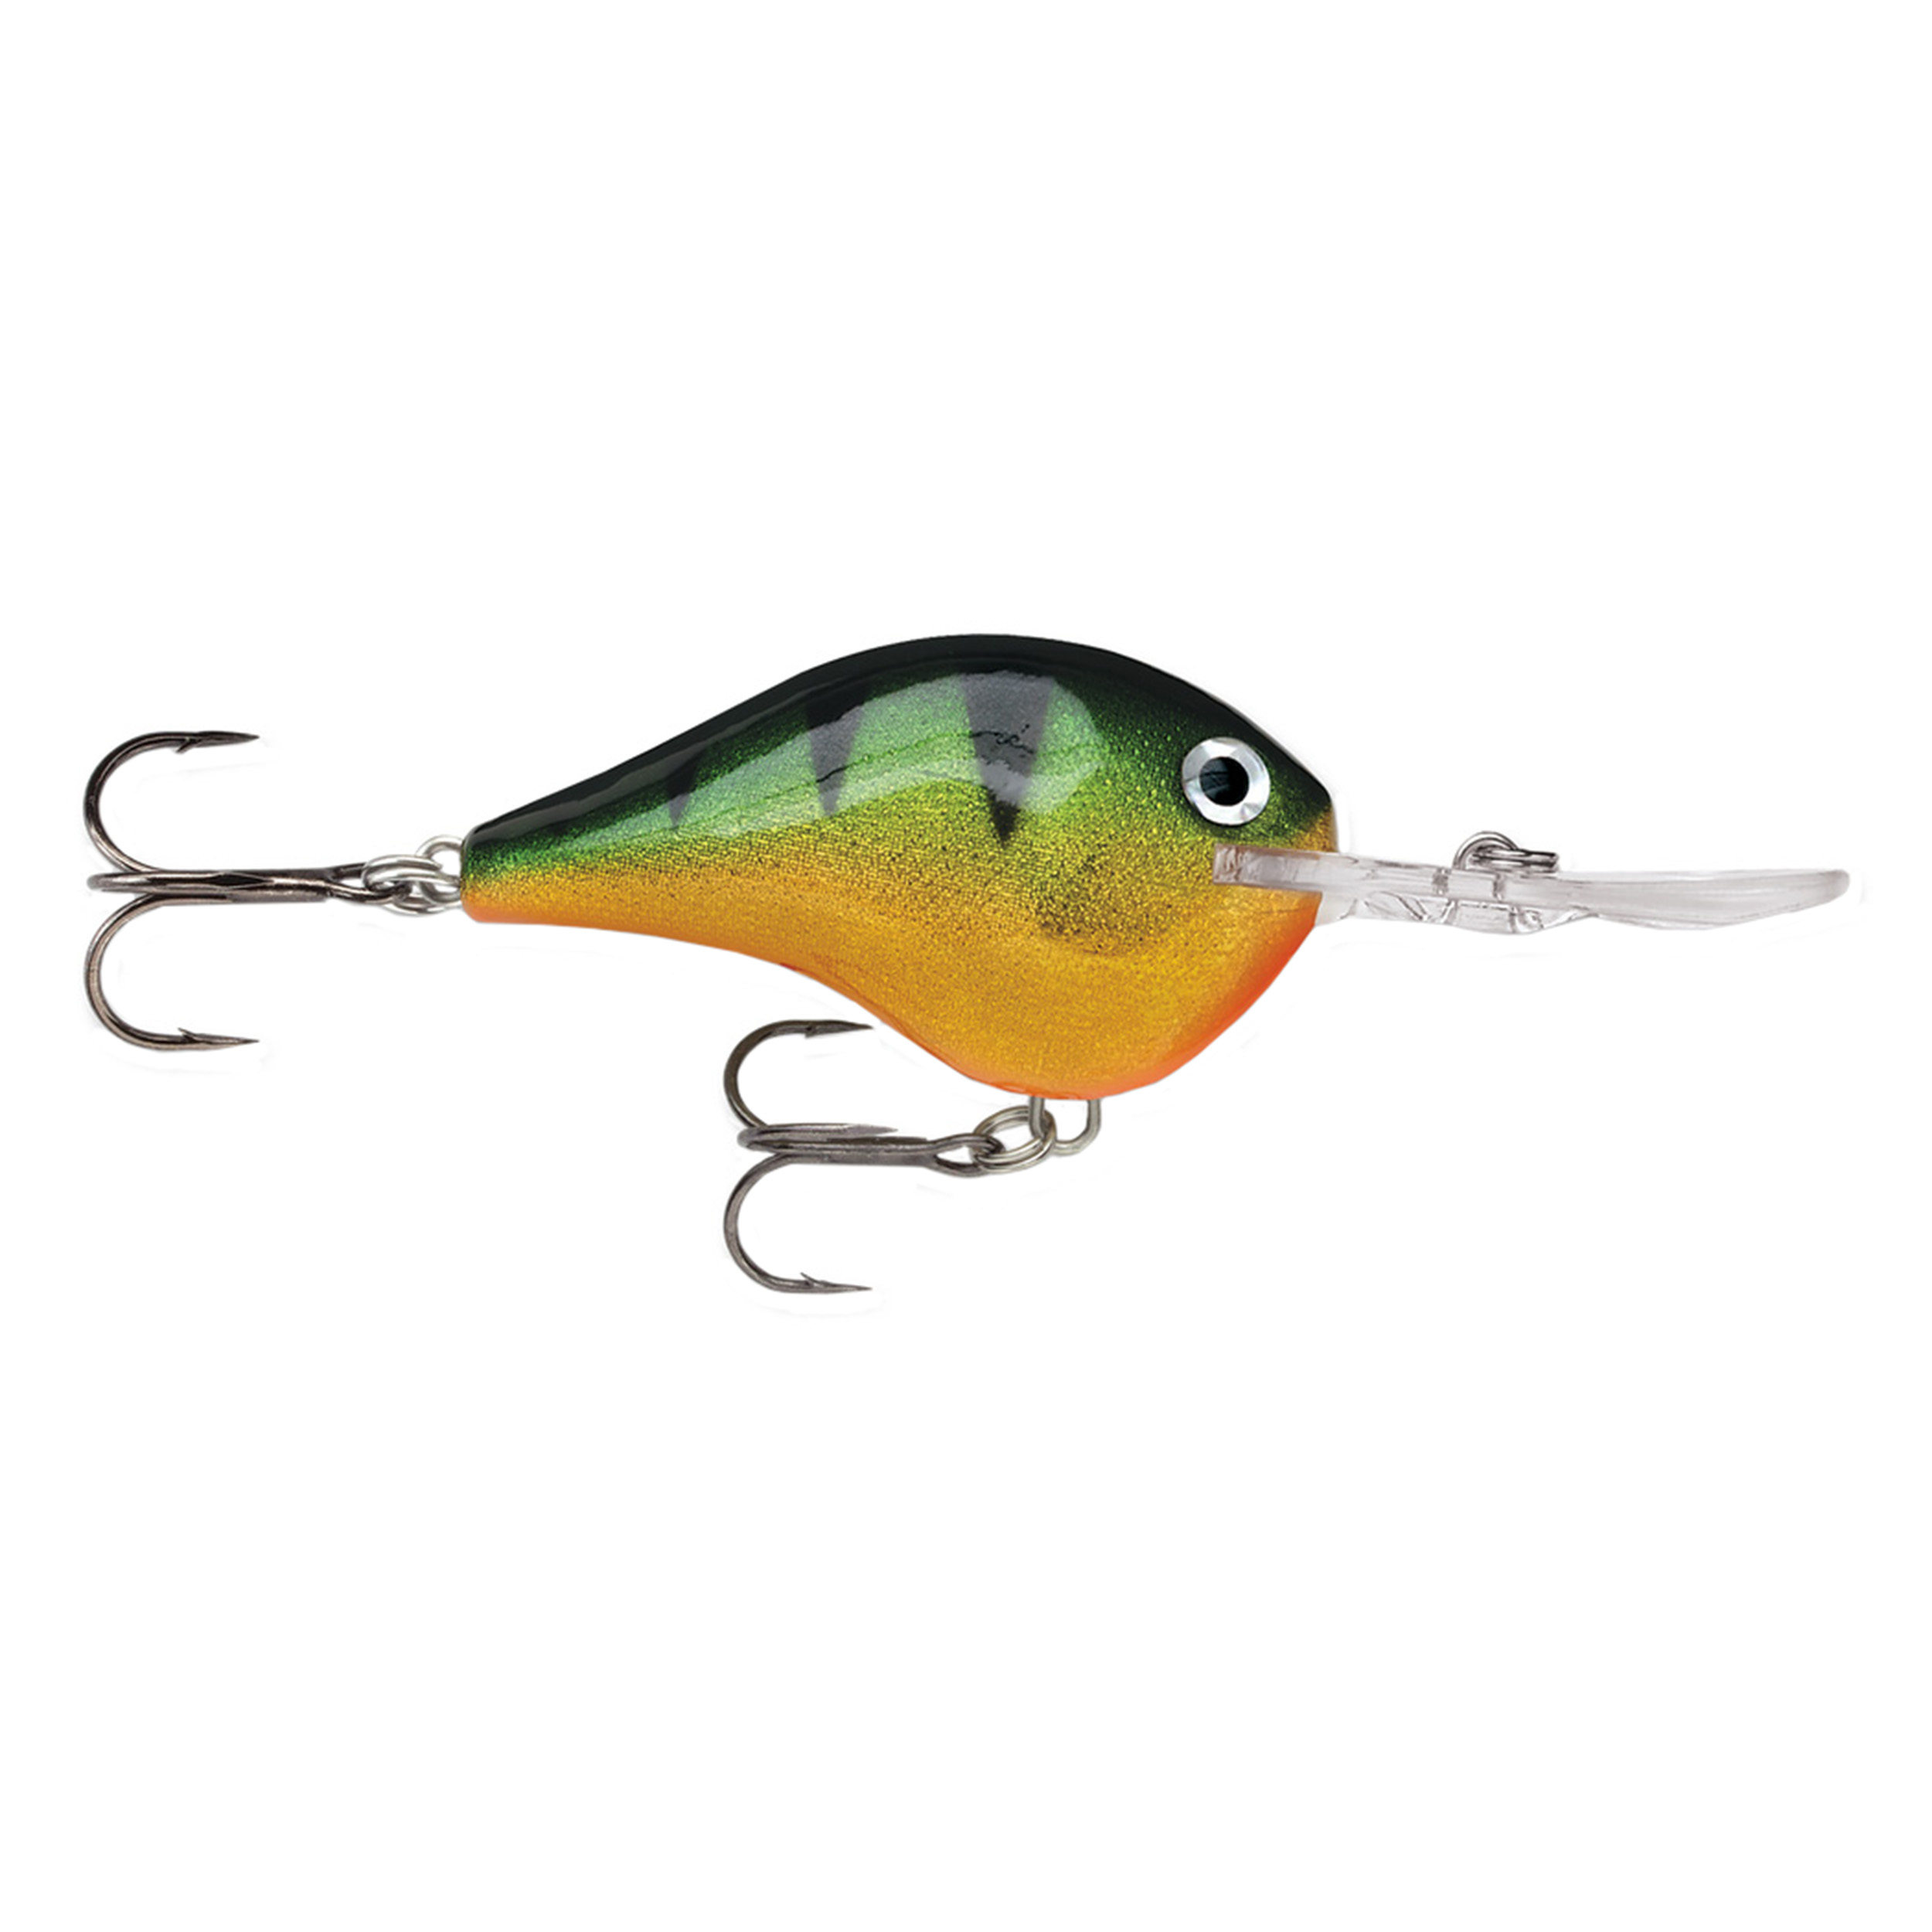 "Rapala Dives-To Series Custom Ink Lure Size 06, 2"" Length, 6' Depth, 2 Number 5 Treble Hooks, Perch, Per 1 by Rapala"